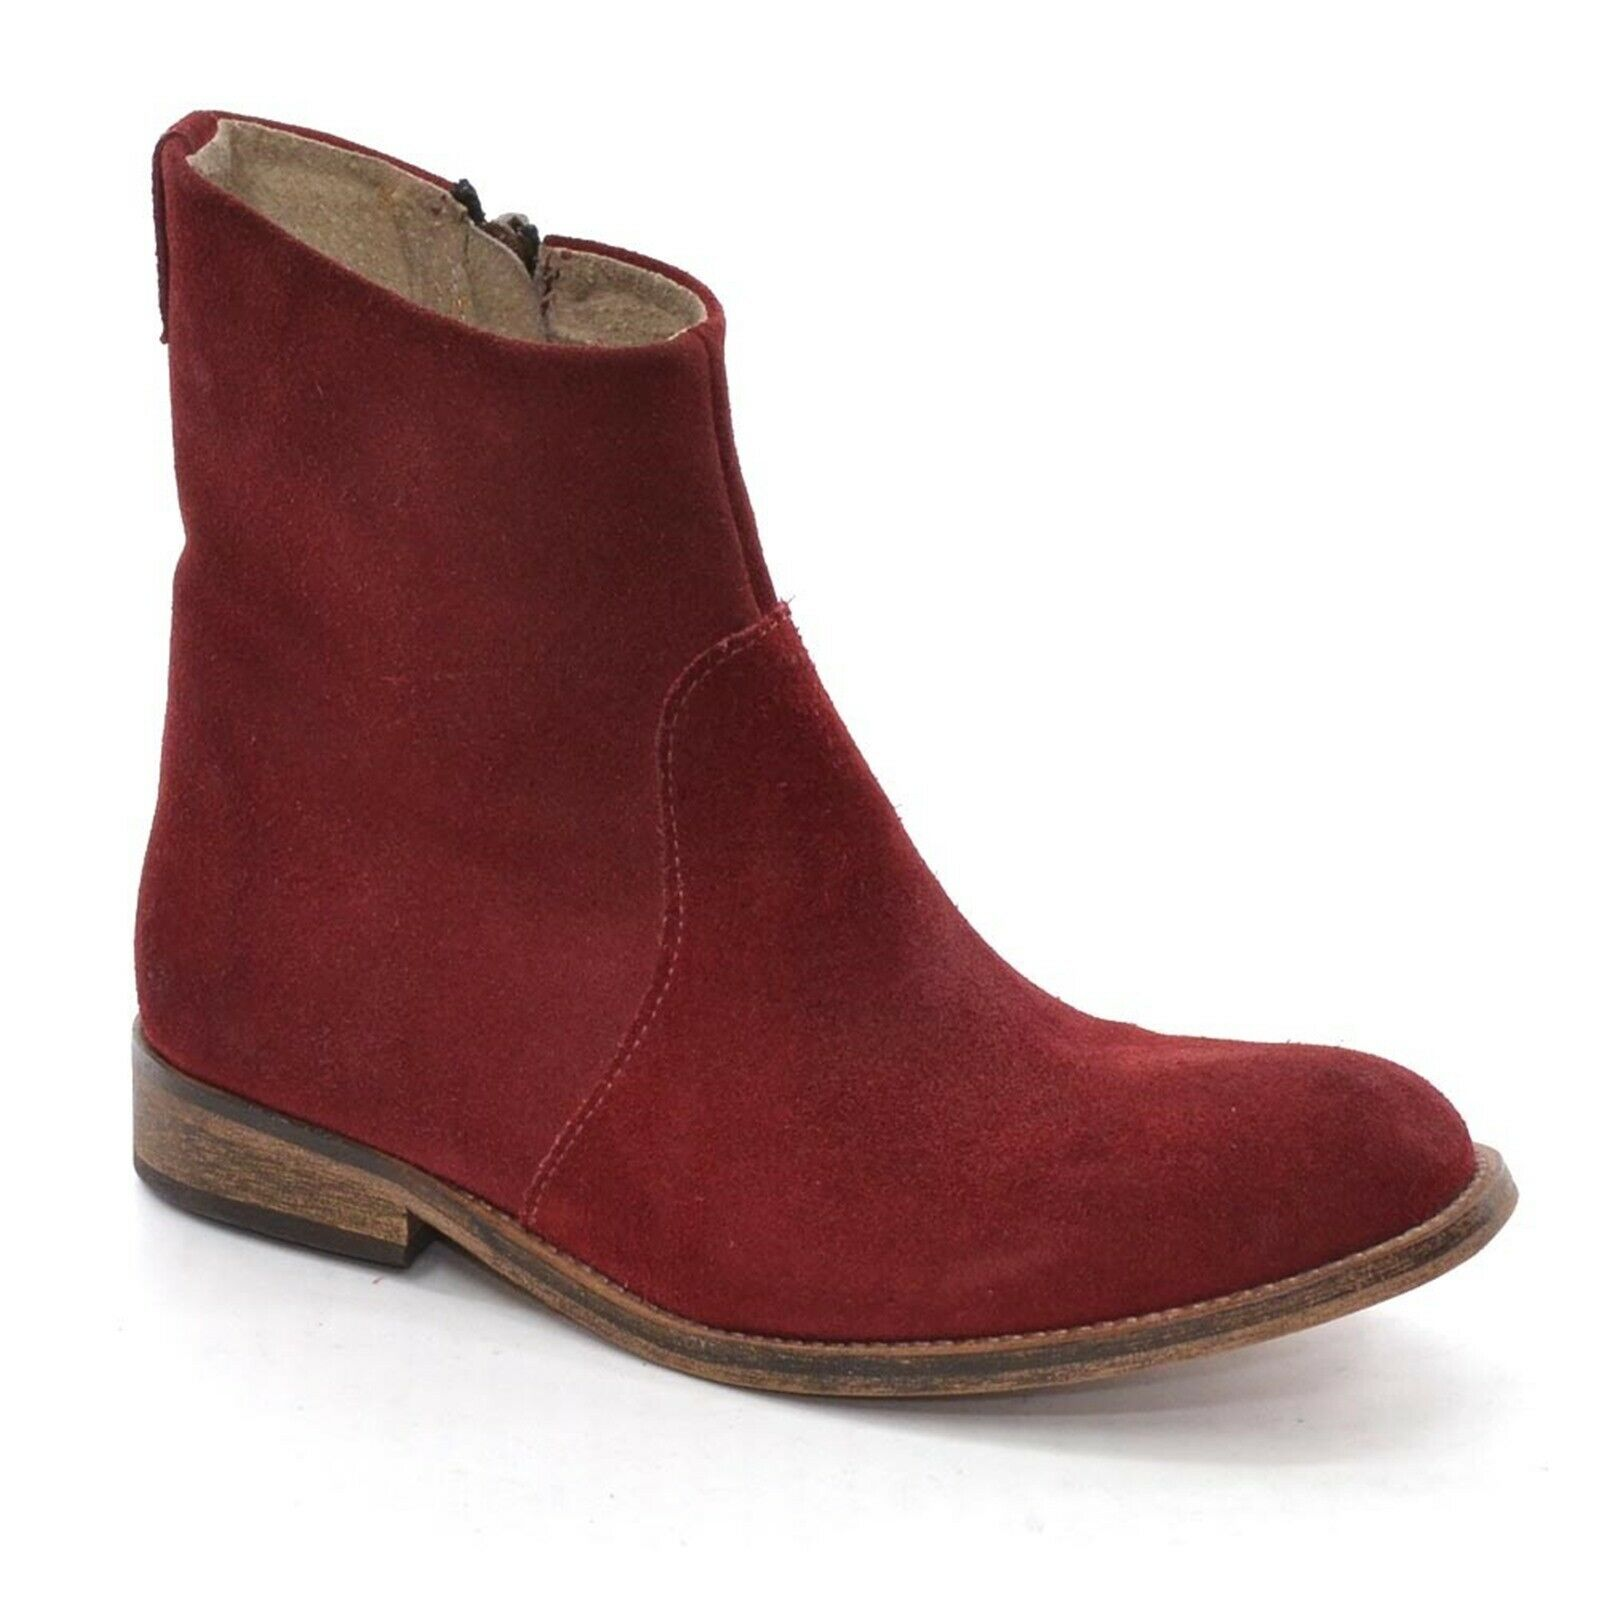 Womens AA Copenhagen Chelsea Ankle Boot 36 / 6 Red Waxed Suede Bootie New in Box